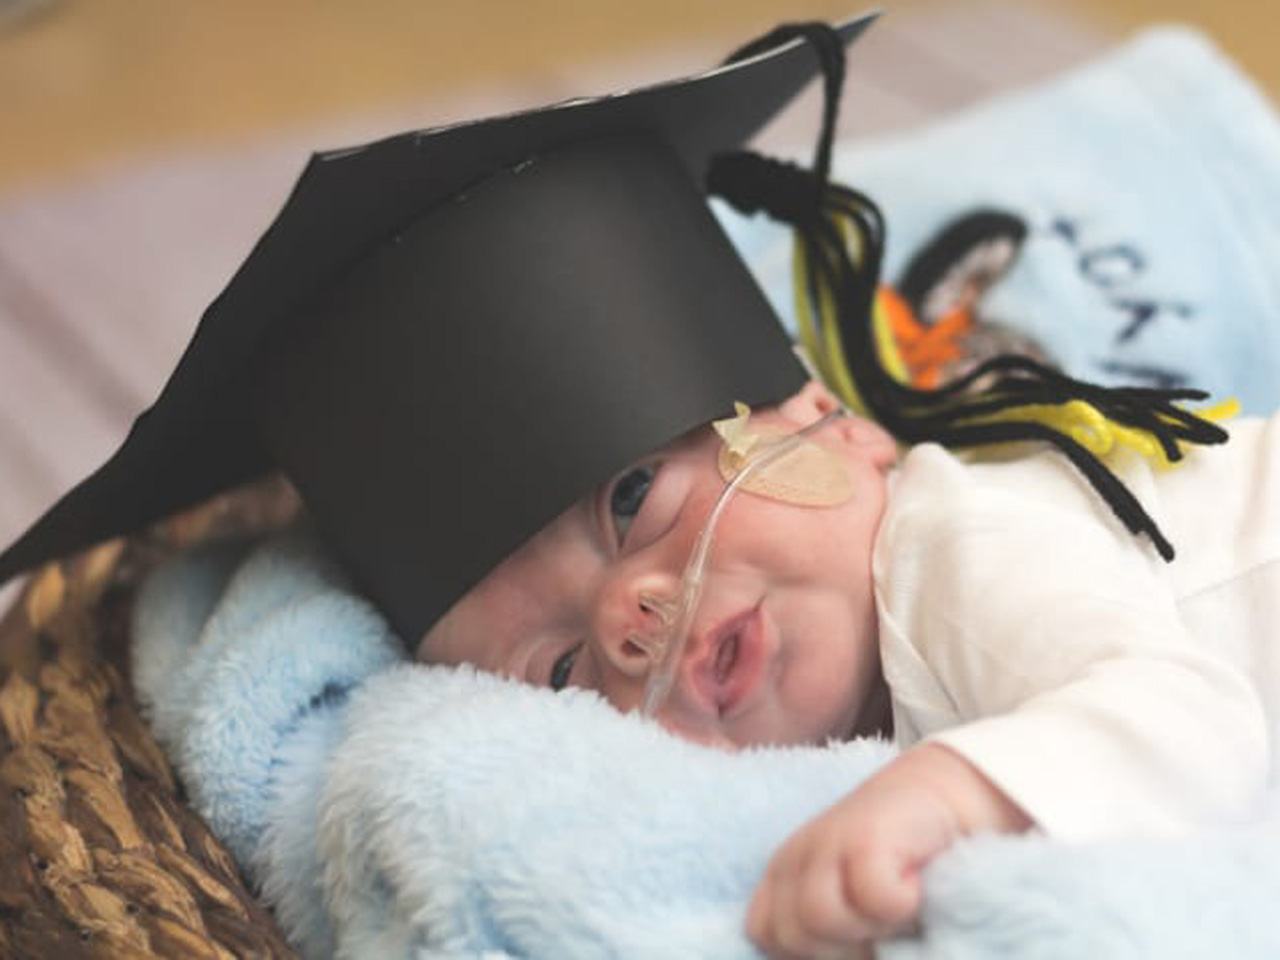 These Little Babies Graduating From The Nicu Is Too Much